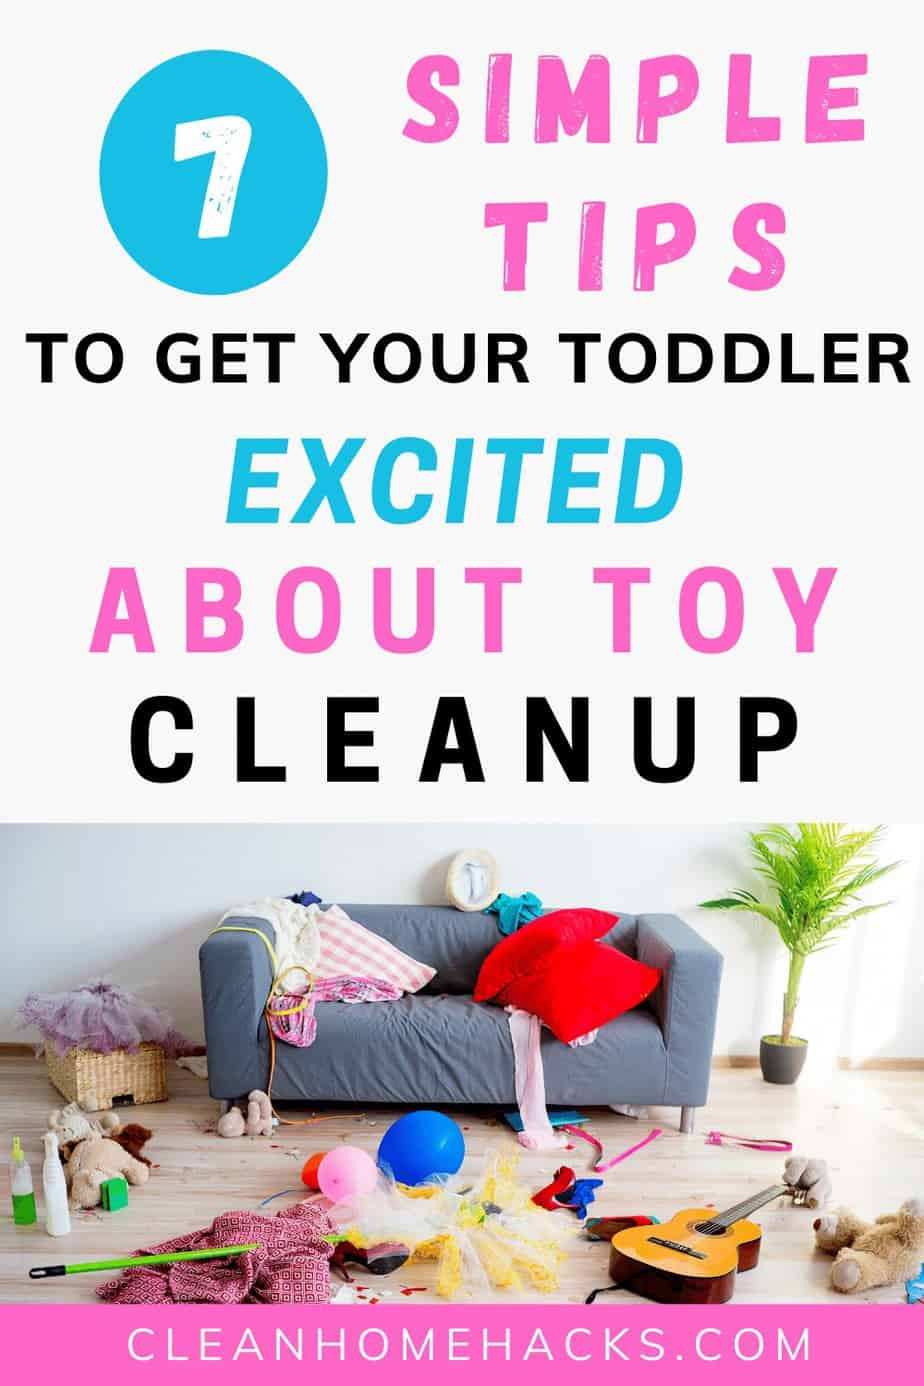 messy room of children's toyson pinterest image to post 7 simple tips to stop fighting with your toddler about toy cleanup